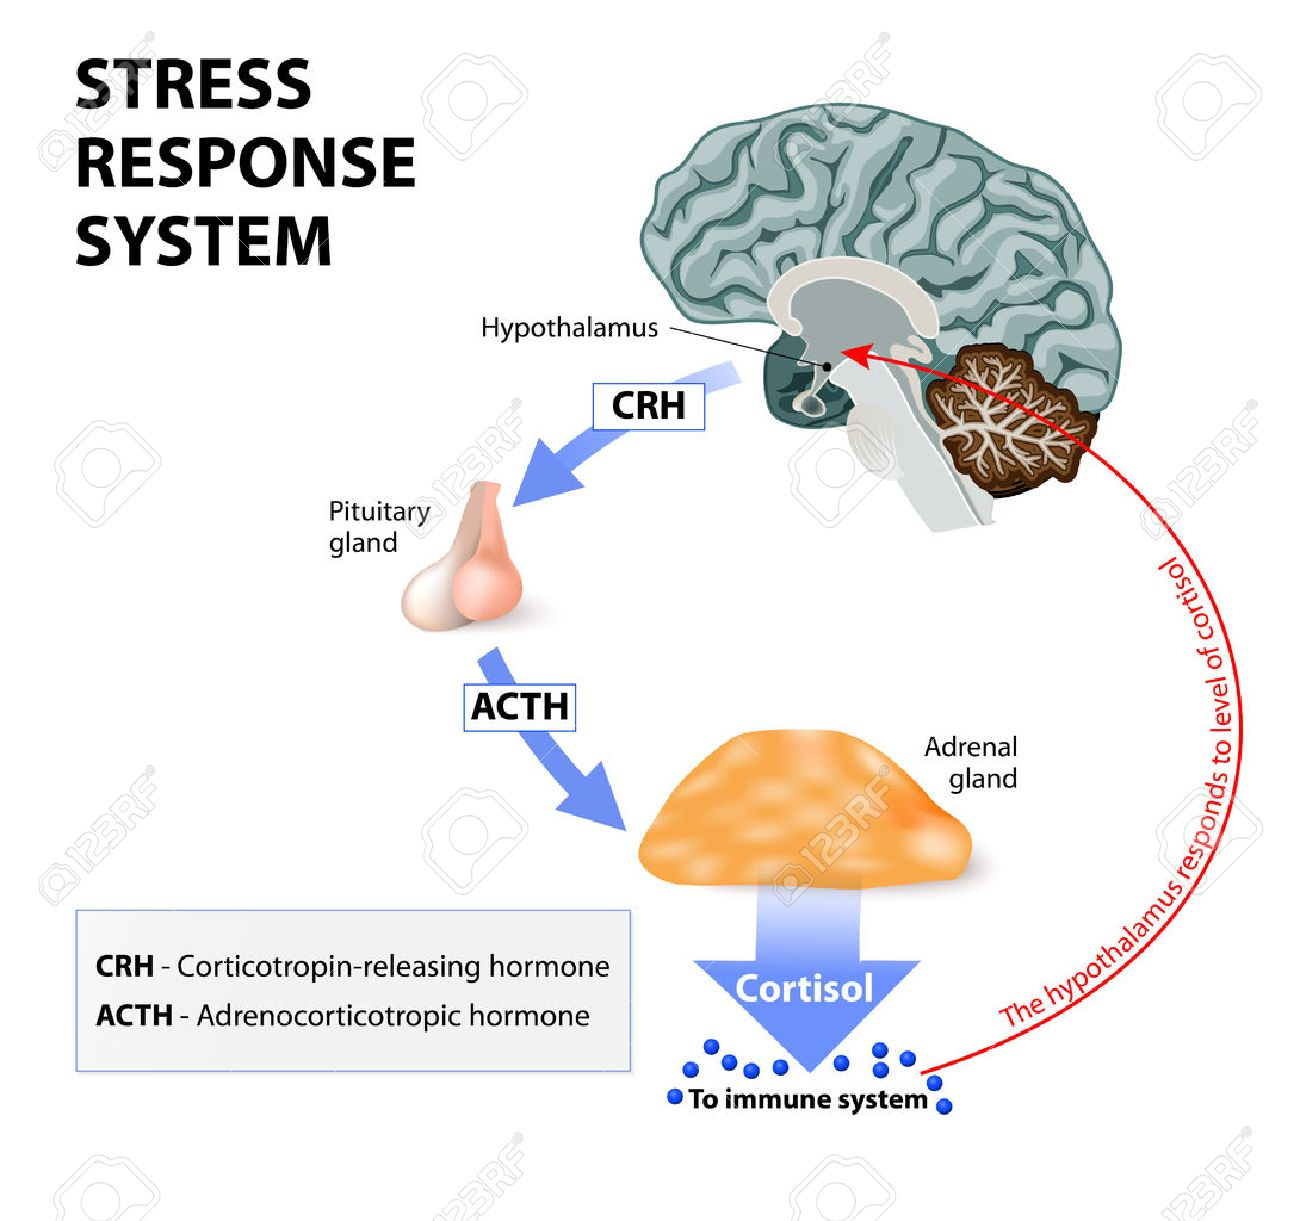 Stress response system  Stress is a main cause of high levels